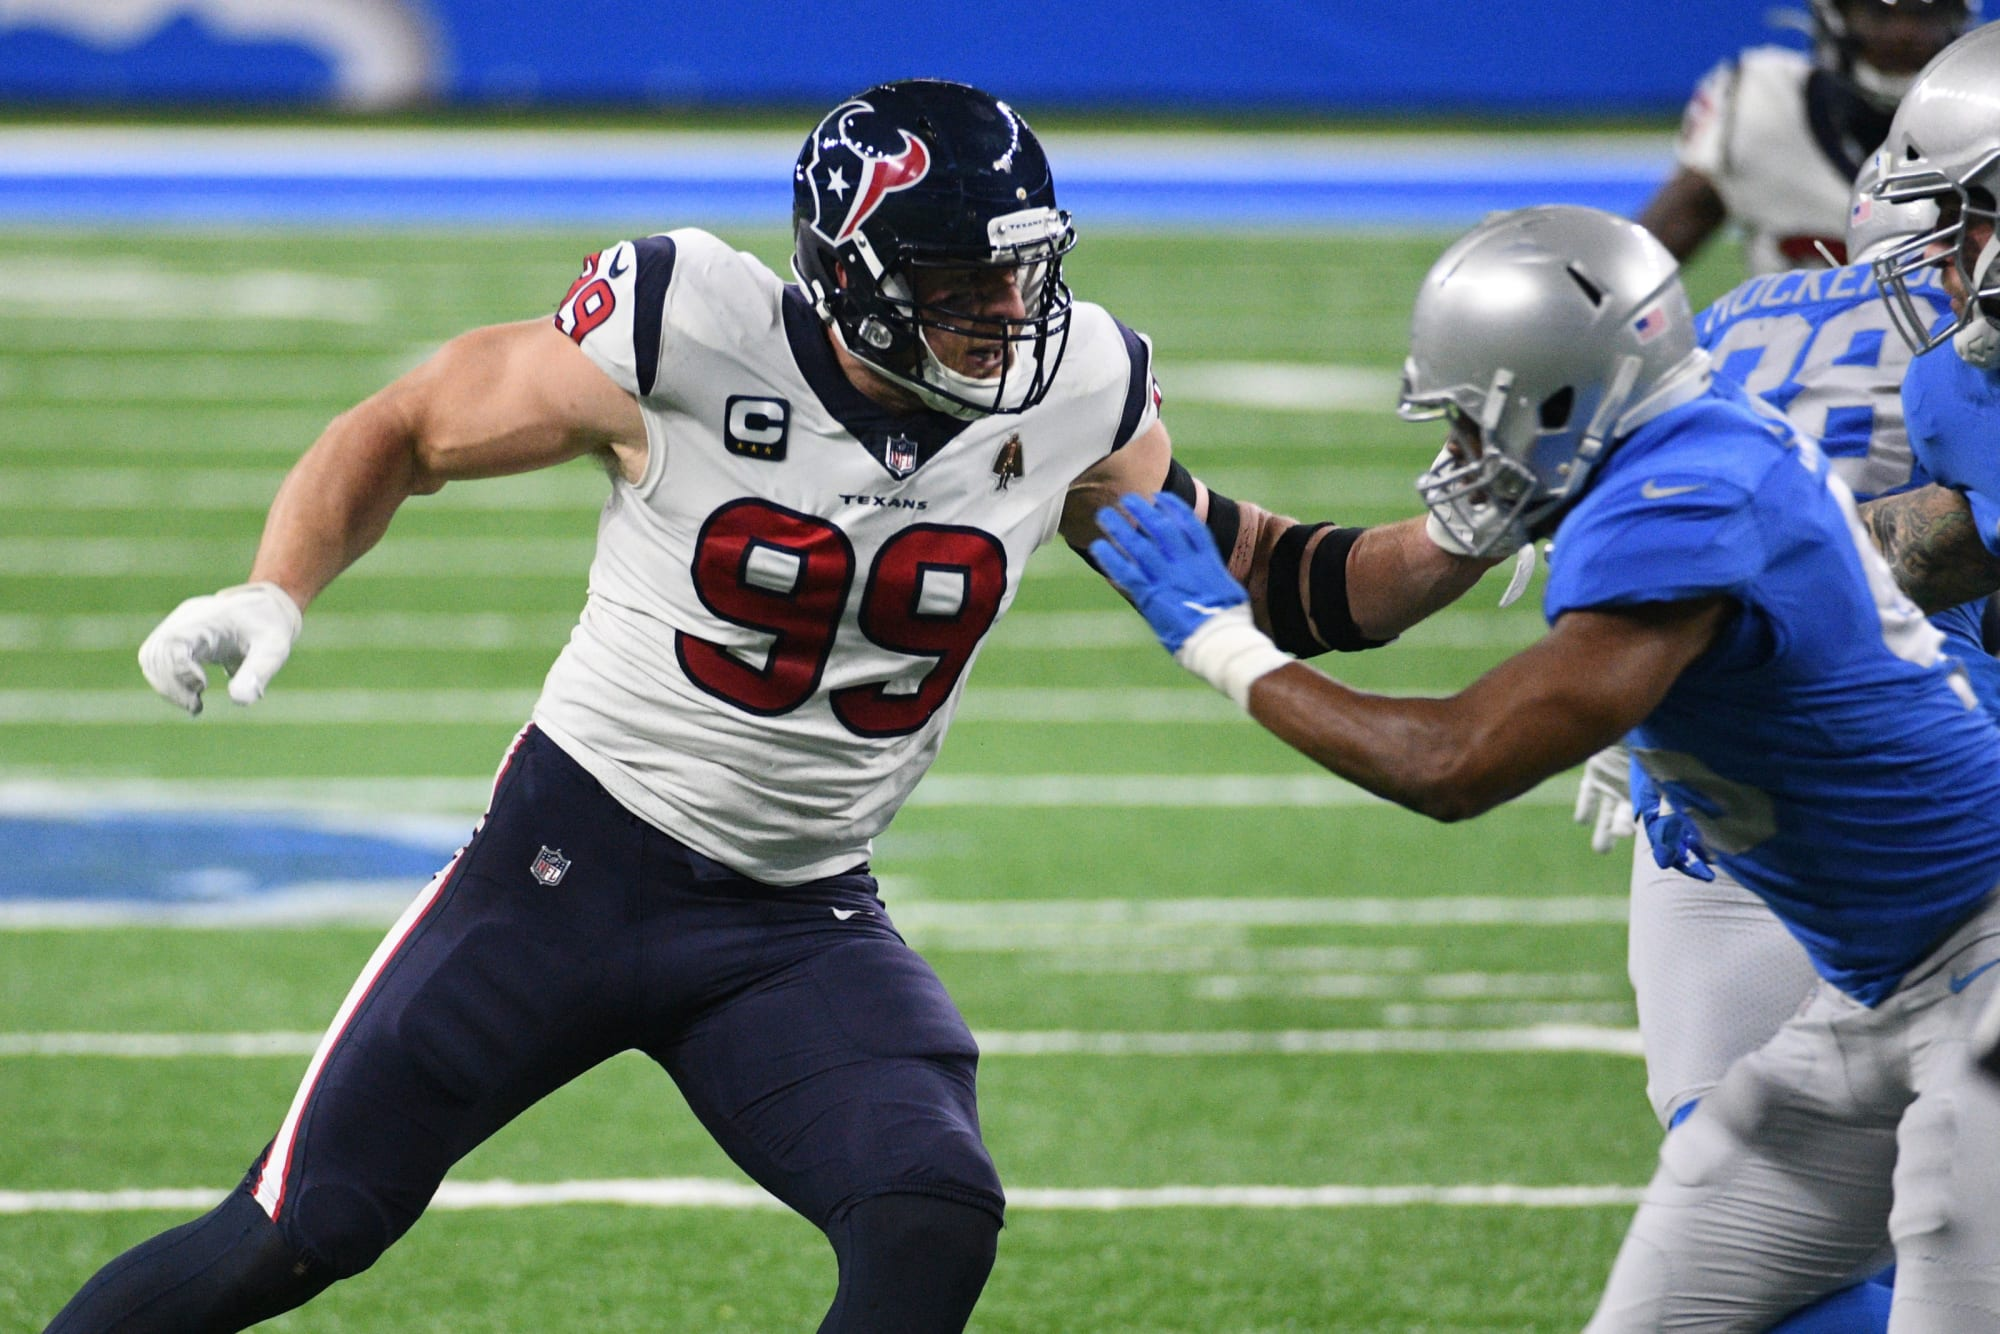 Latest update on J.J. Watt is bad news for the Packers